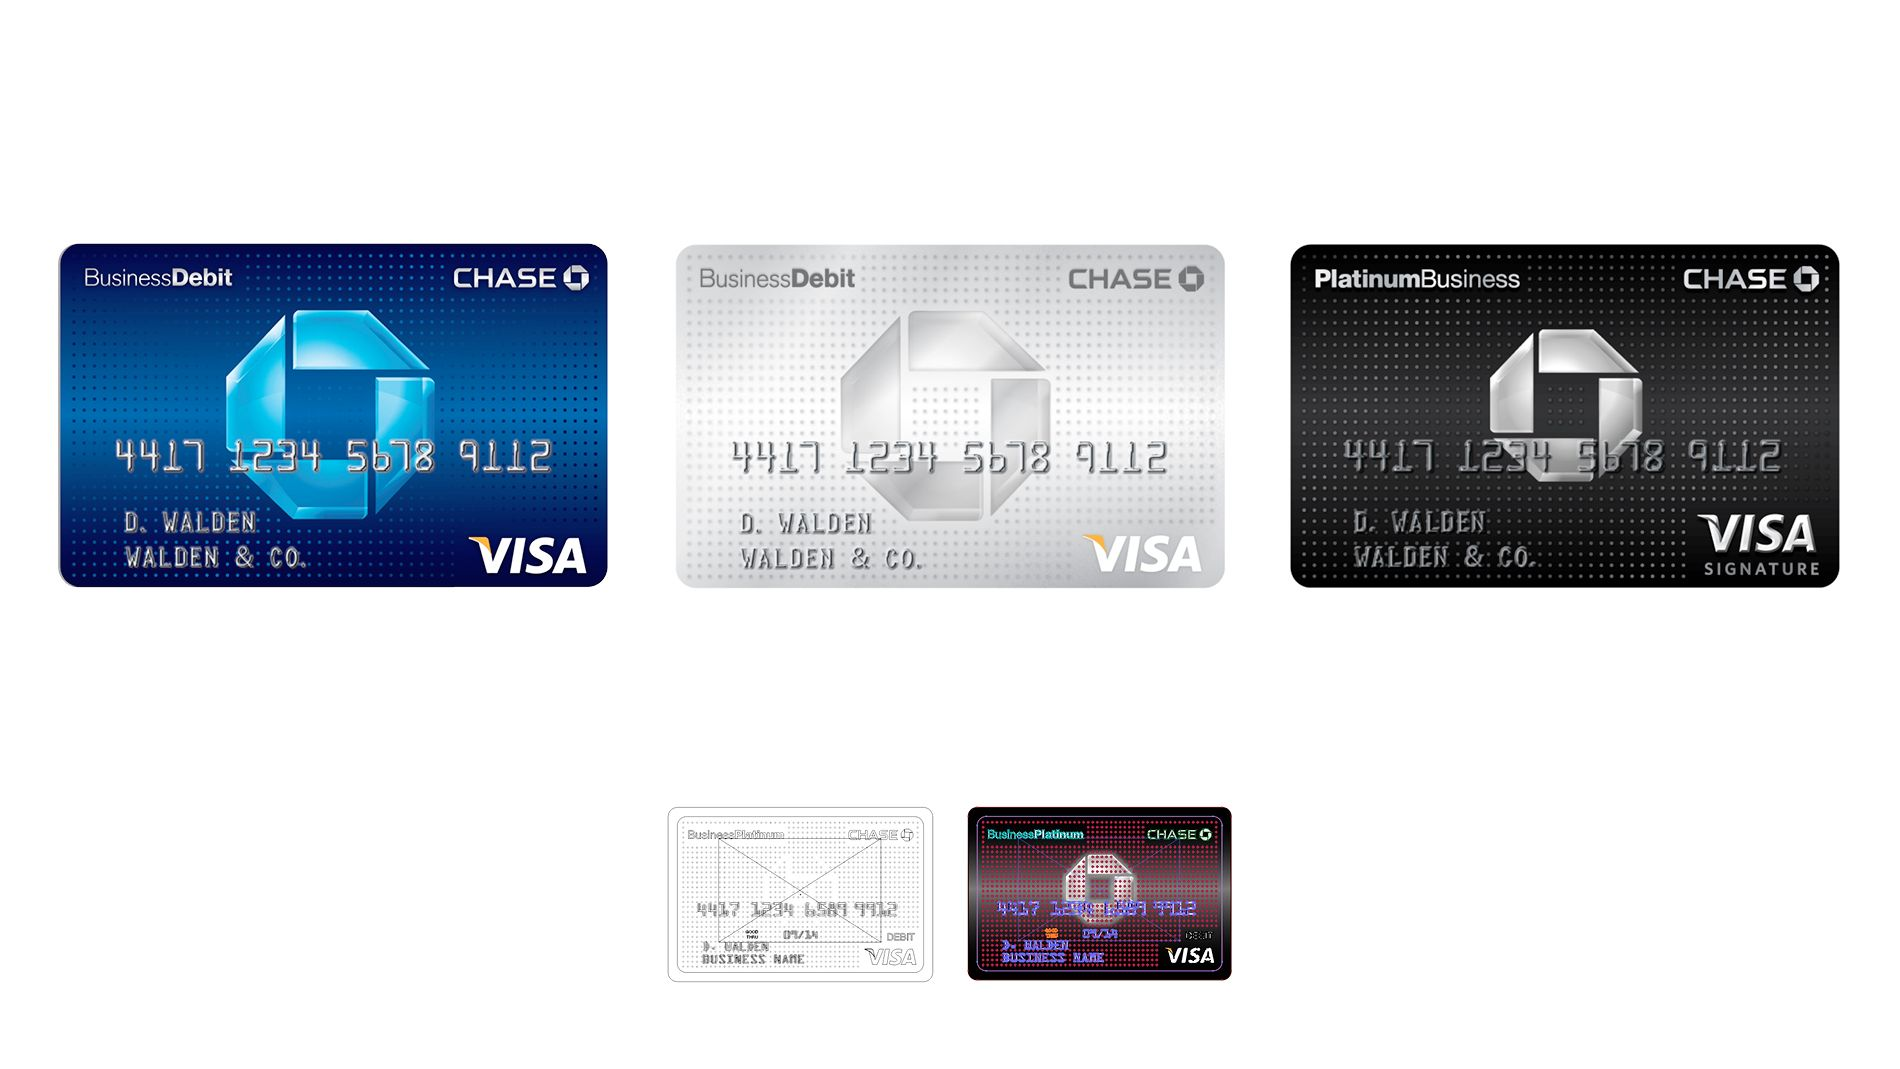 credit card and new bank card Why choose idbi bank credit card idbi bank credit cards offer benefits that match your preferences, suit your lifestyle and are accepted globally.